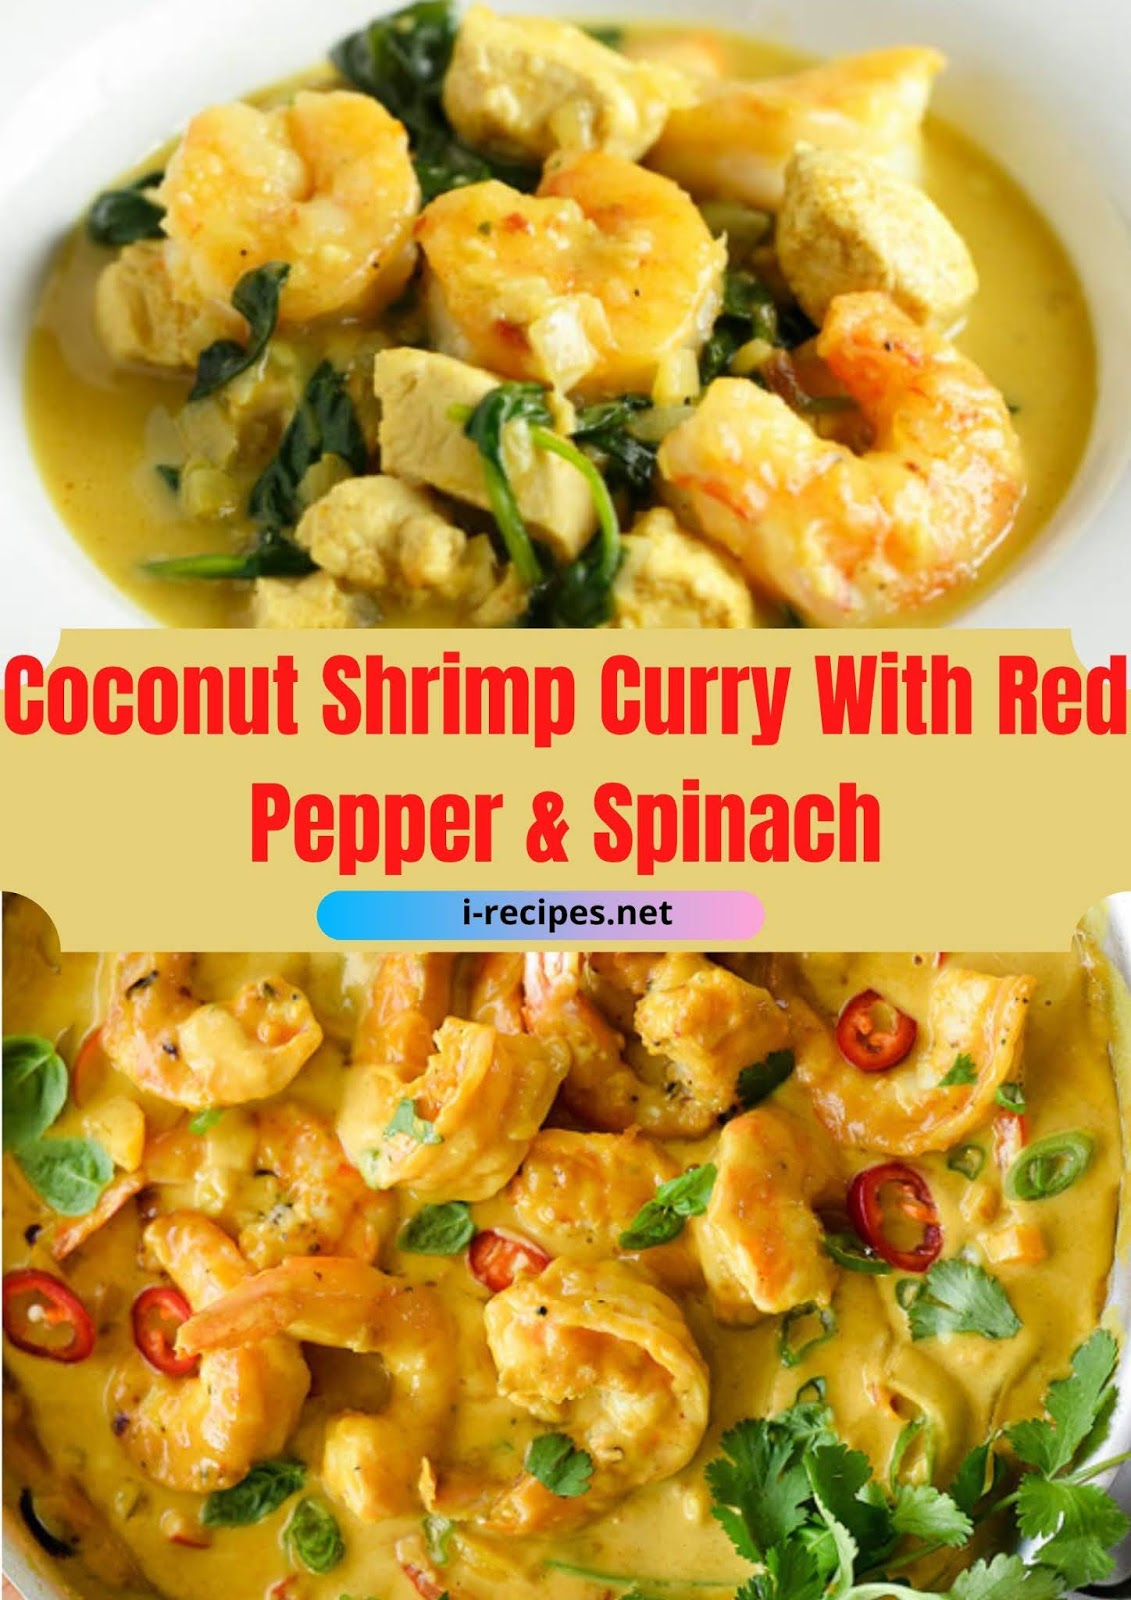 Coconut Shrimp Curry With Red Pepper & Spinach